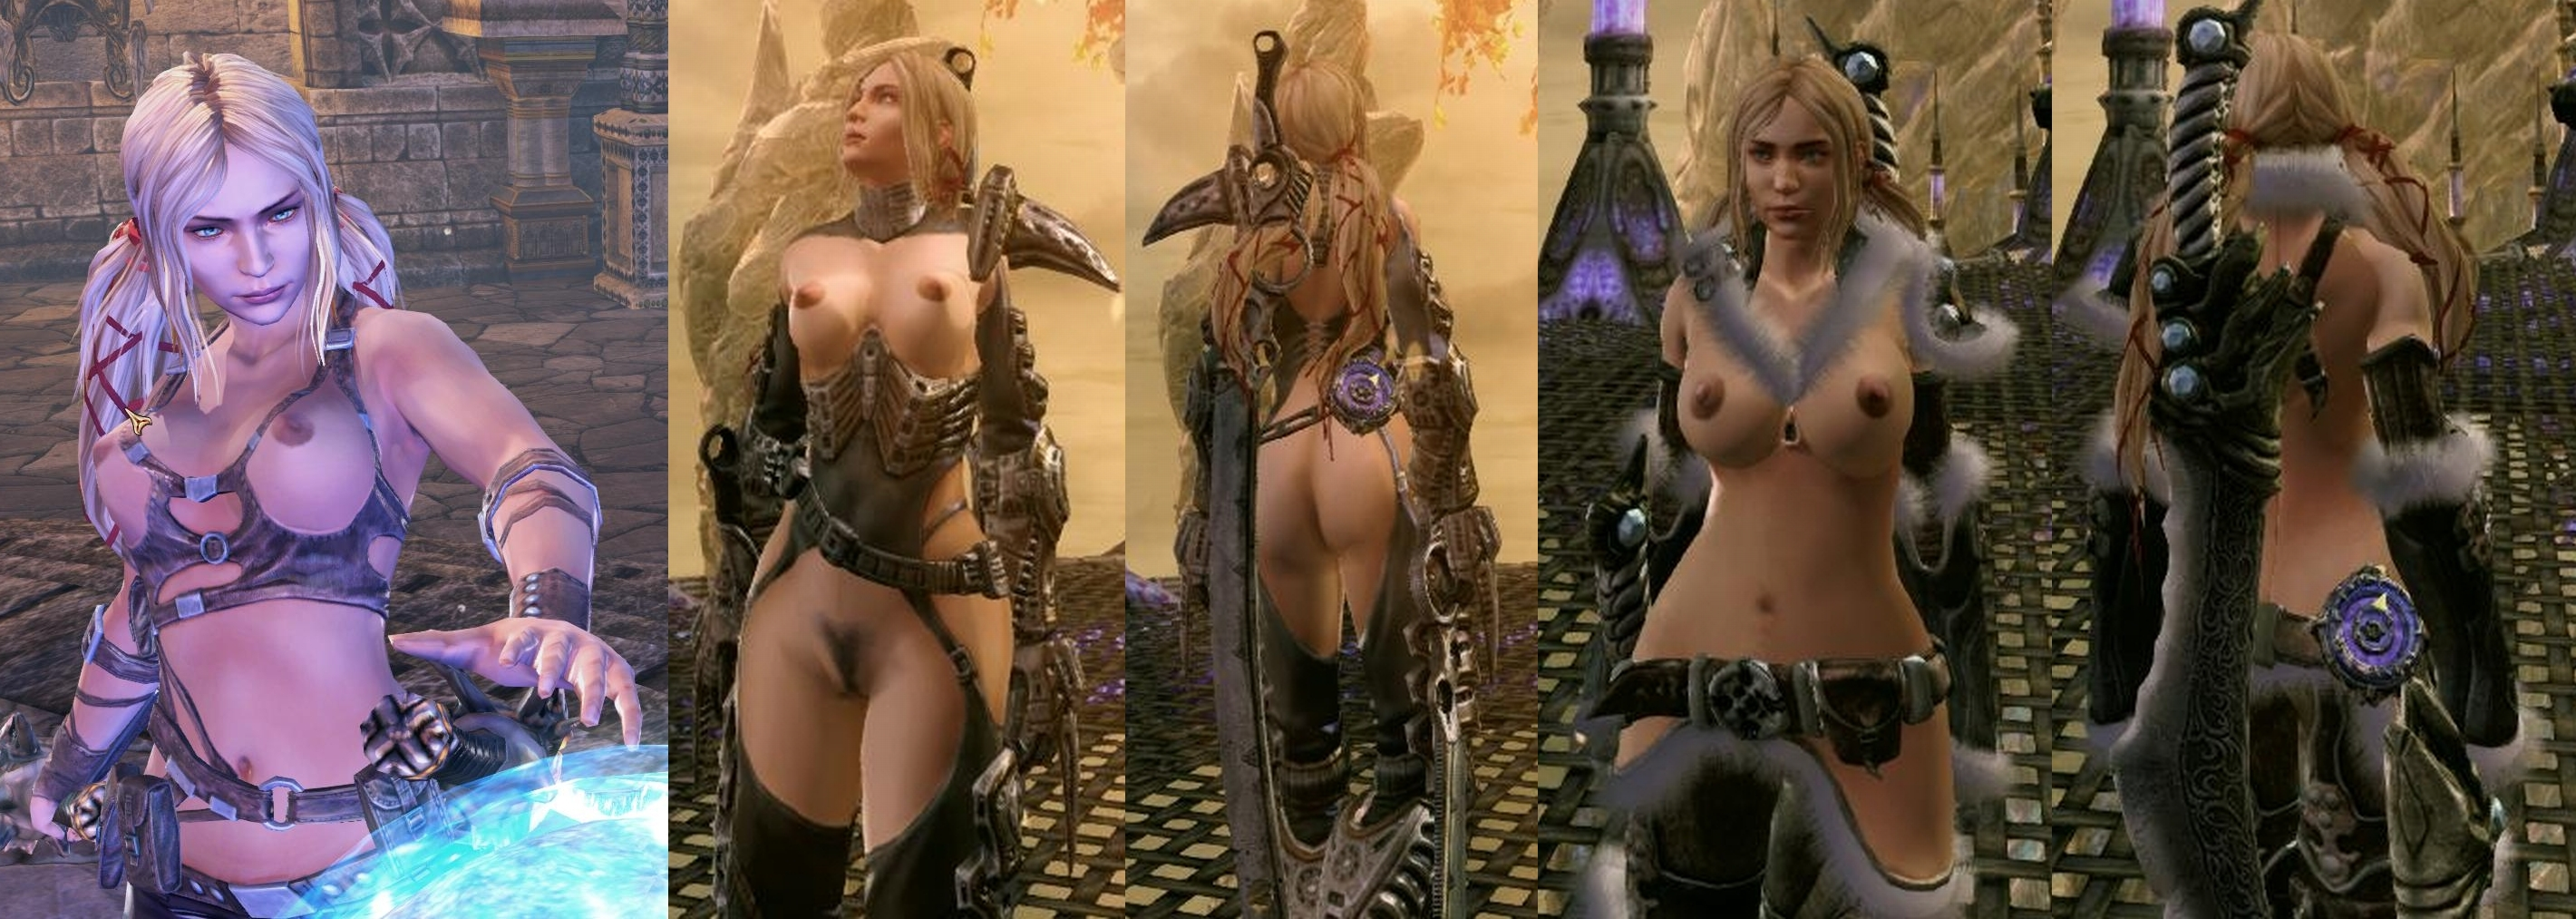 Girl characters in video games naked sex video